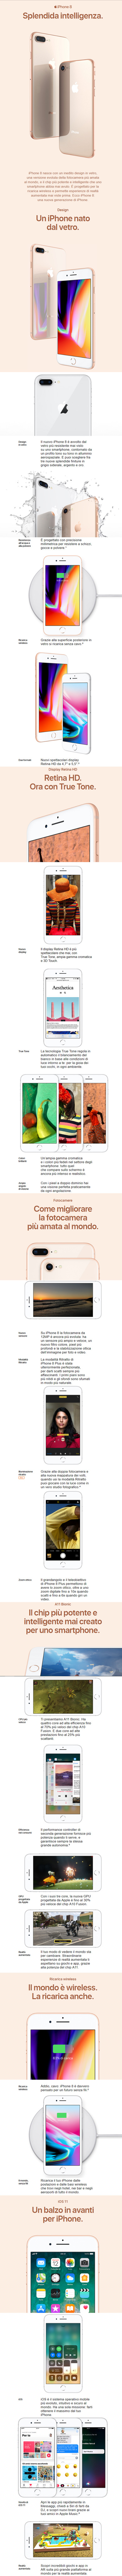 Apple iPhone 8 e Apple iPhone 8 Plus - Infografica